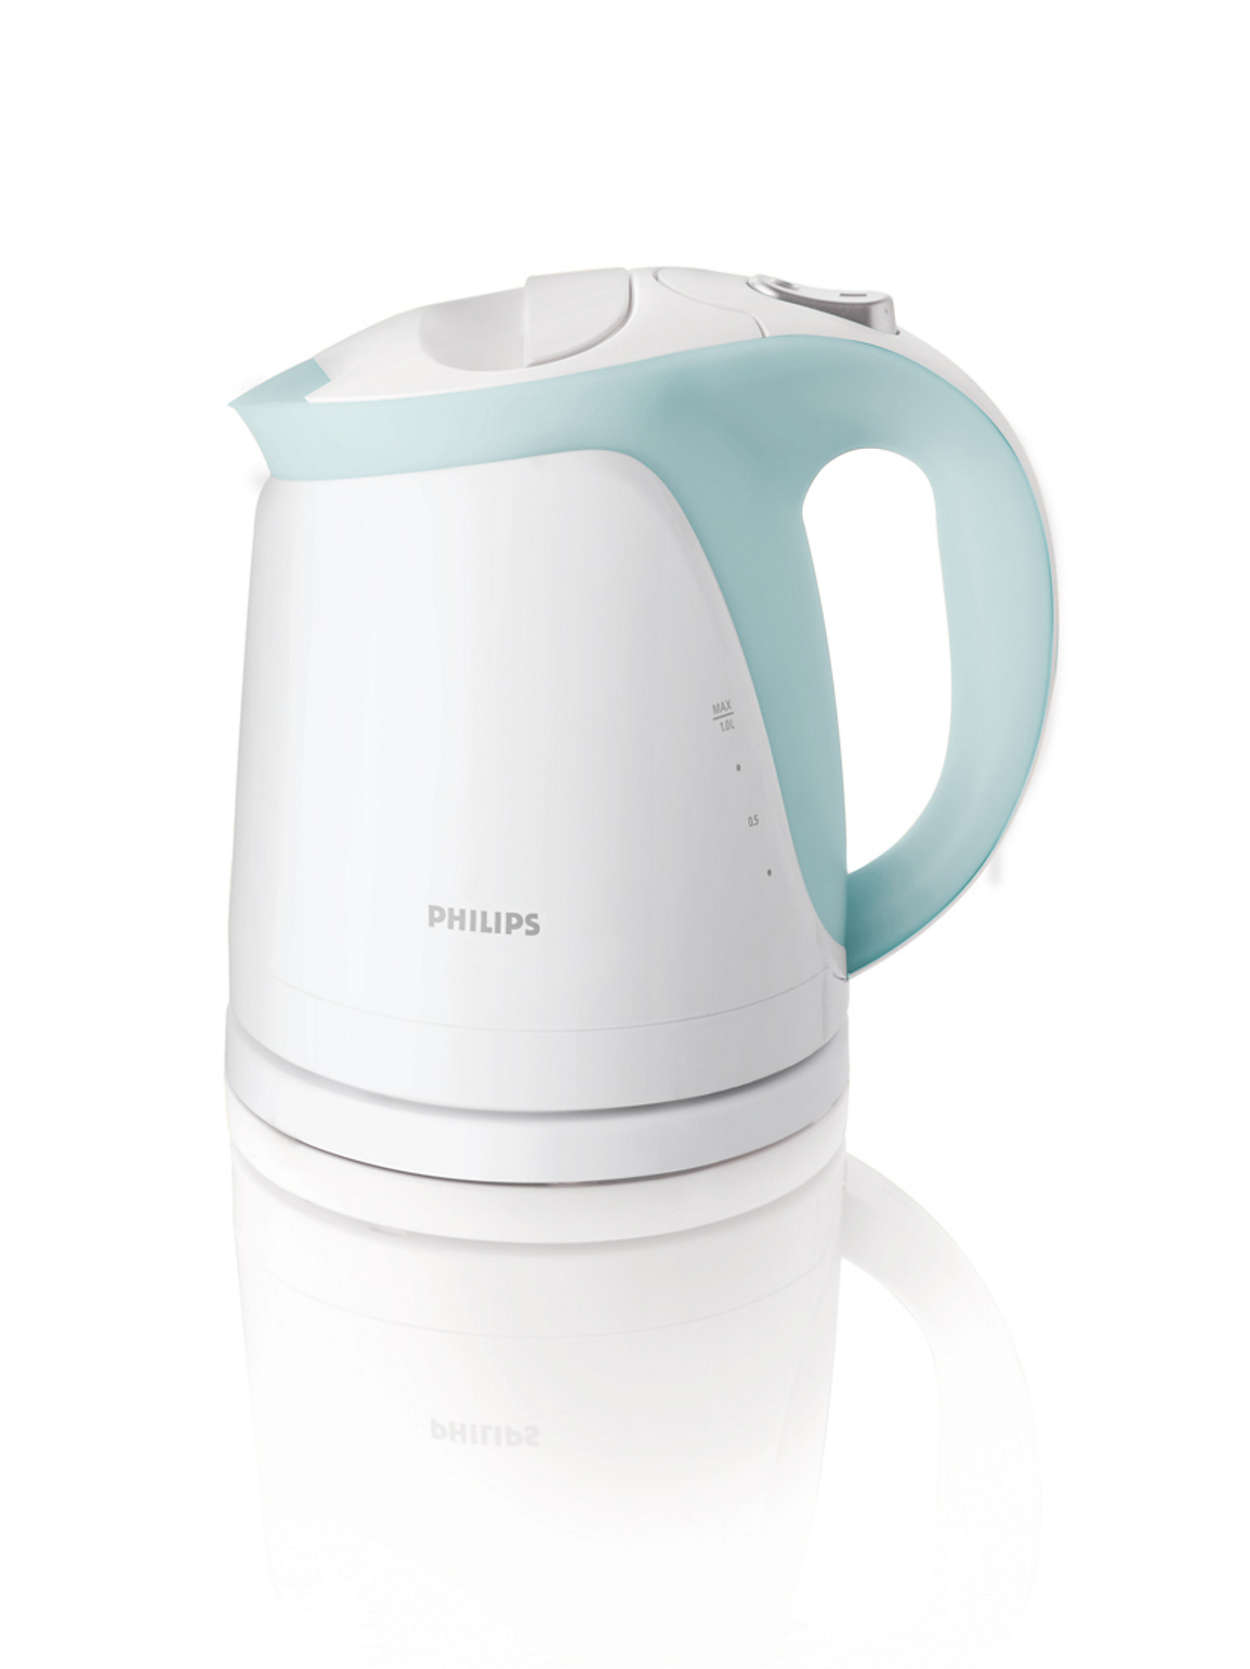 Clear water, cleaner kettle